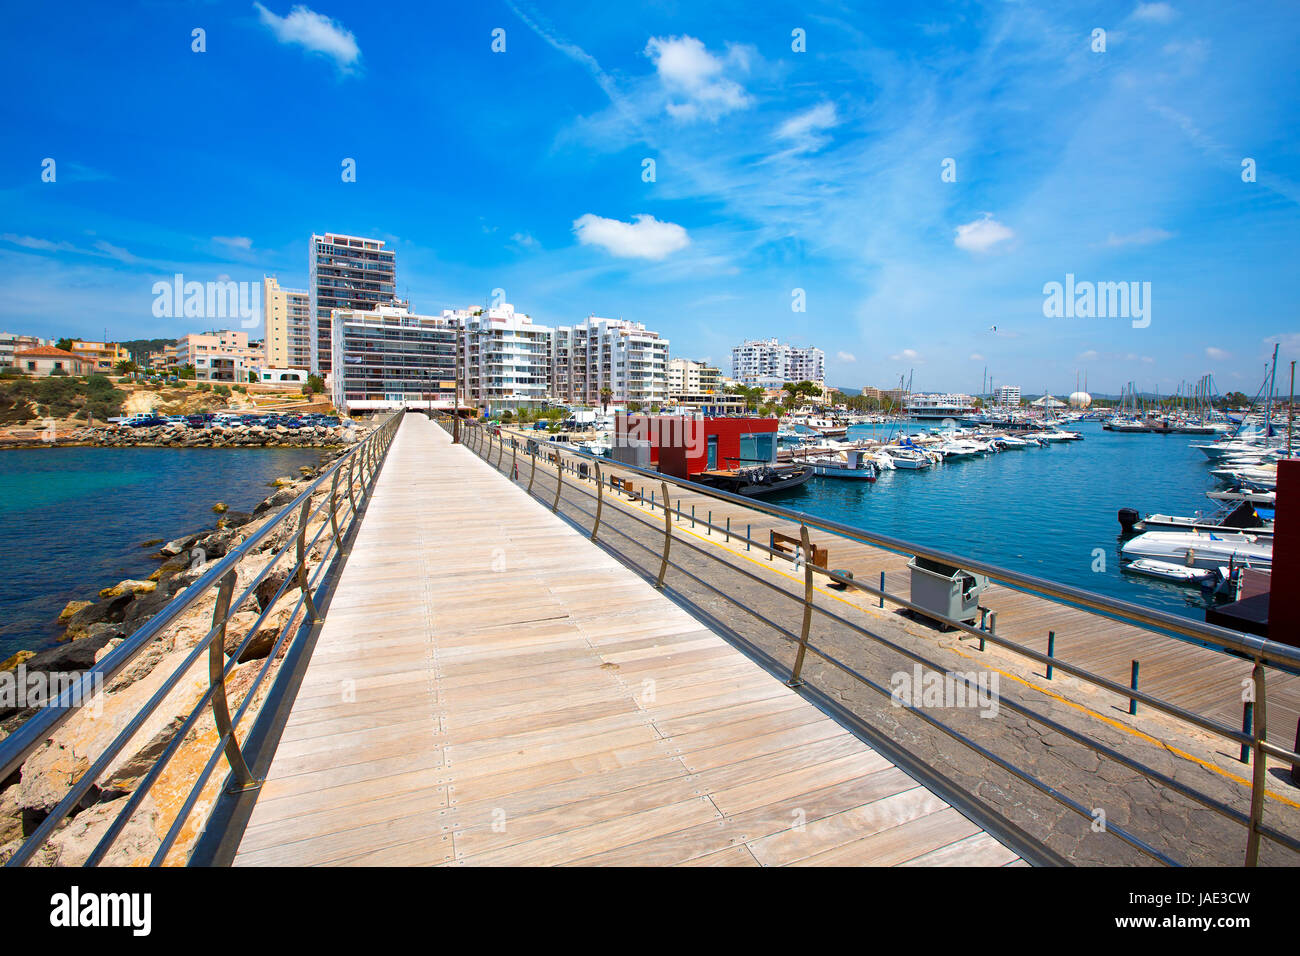 Ibiza San Antonio Abad Sant Antoni De Portmany In Balearic Islands Stock Photo Alamy